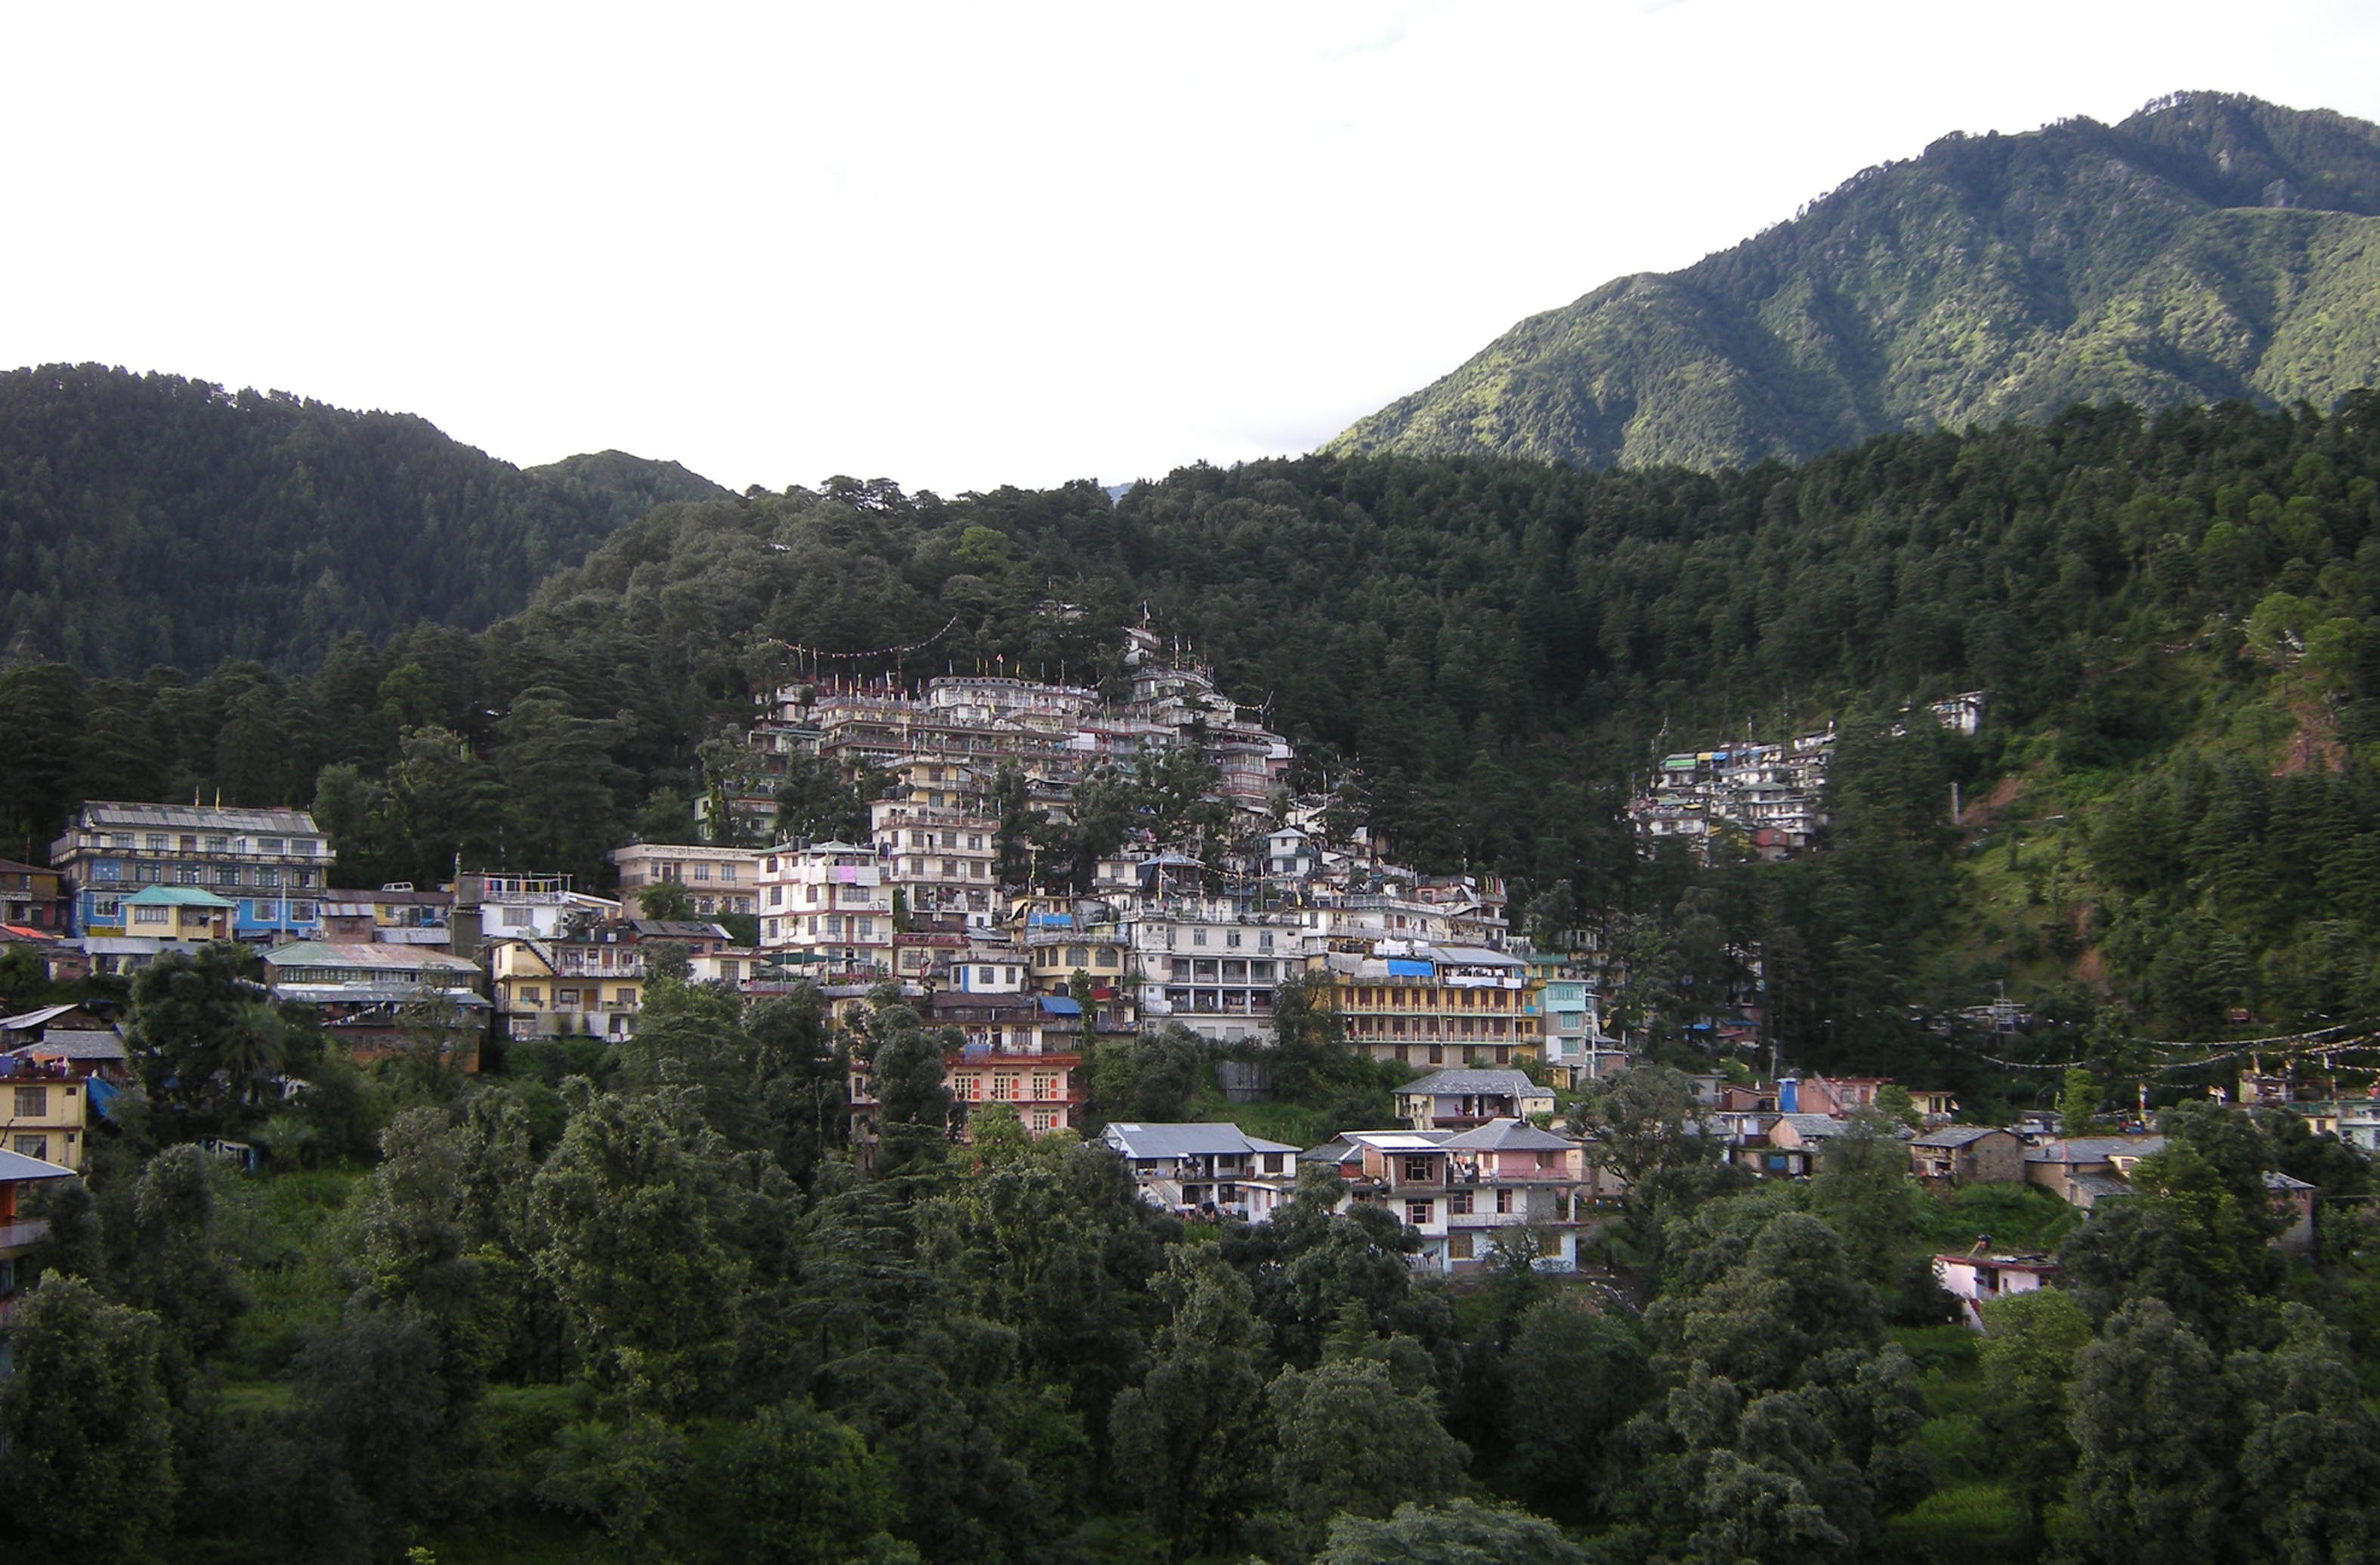 Tibetans in Himachal state allowed temporary occupation of homes built on forestland